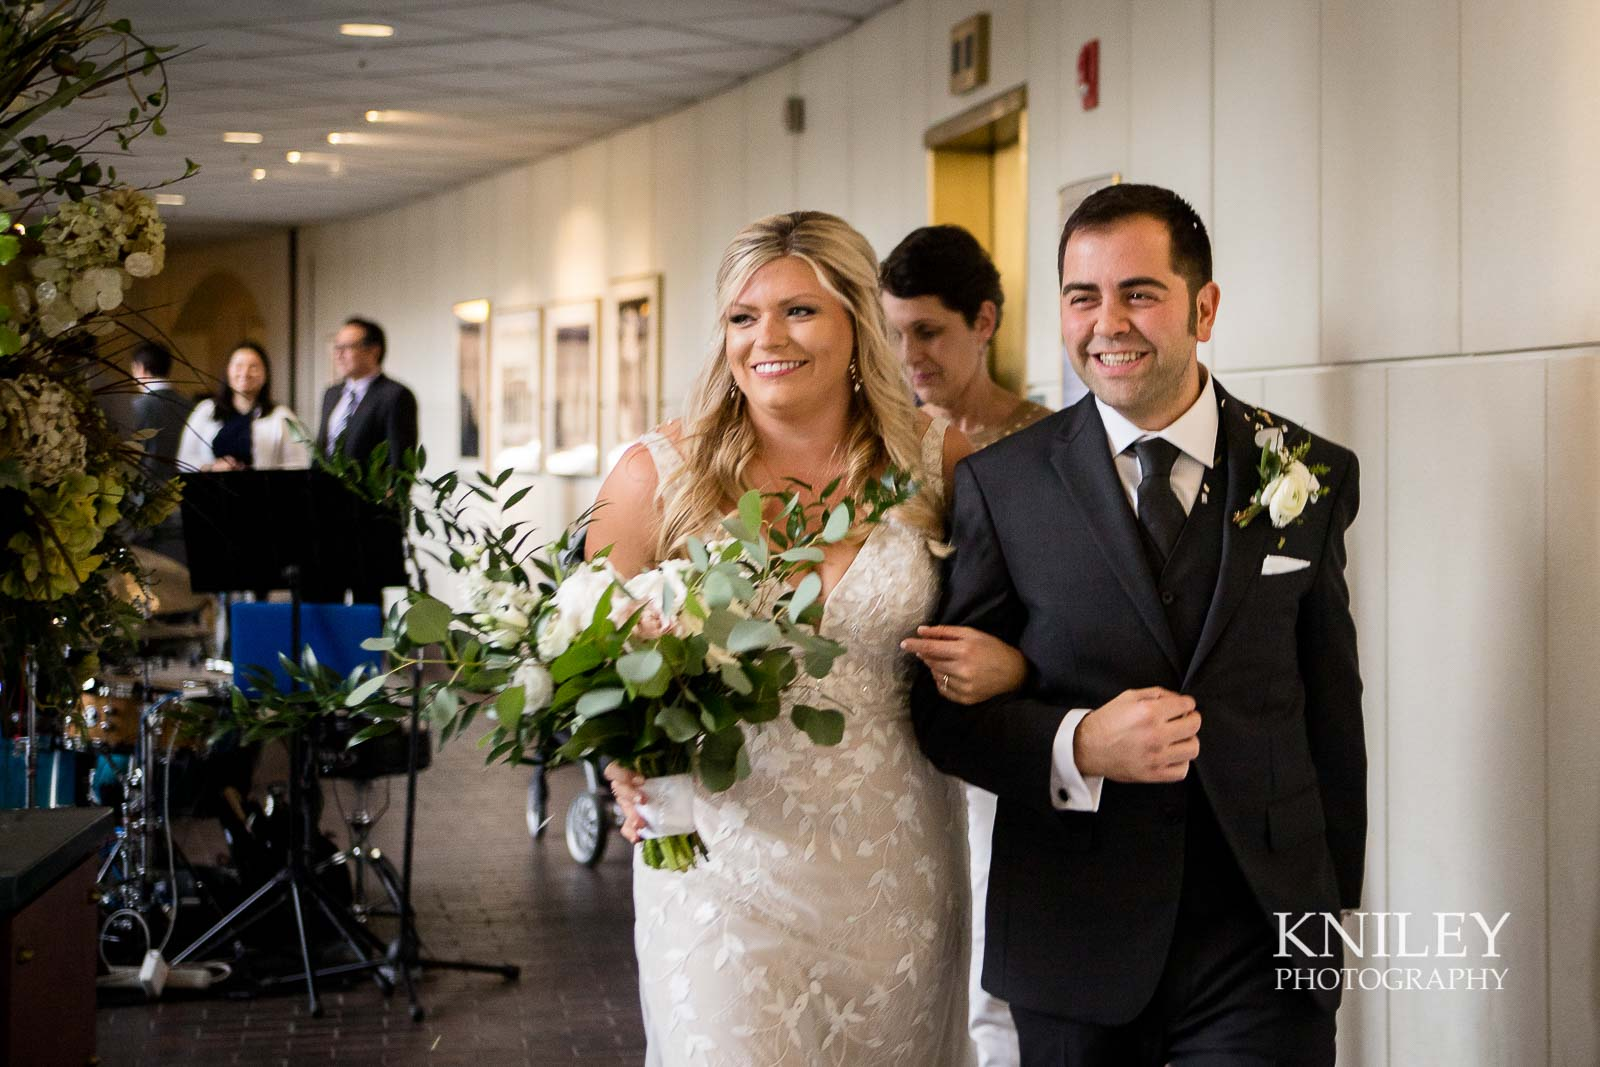 32-Max-of-Eastman-Wedding-and-Reception-Rochester-NY-Kniley-Photography.jpg